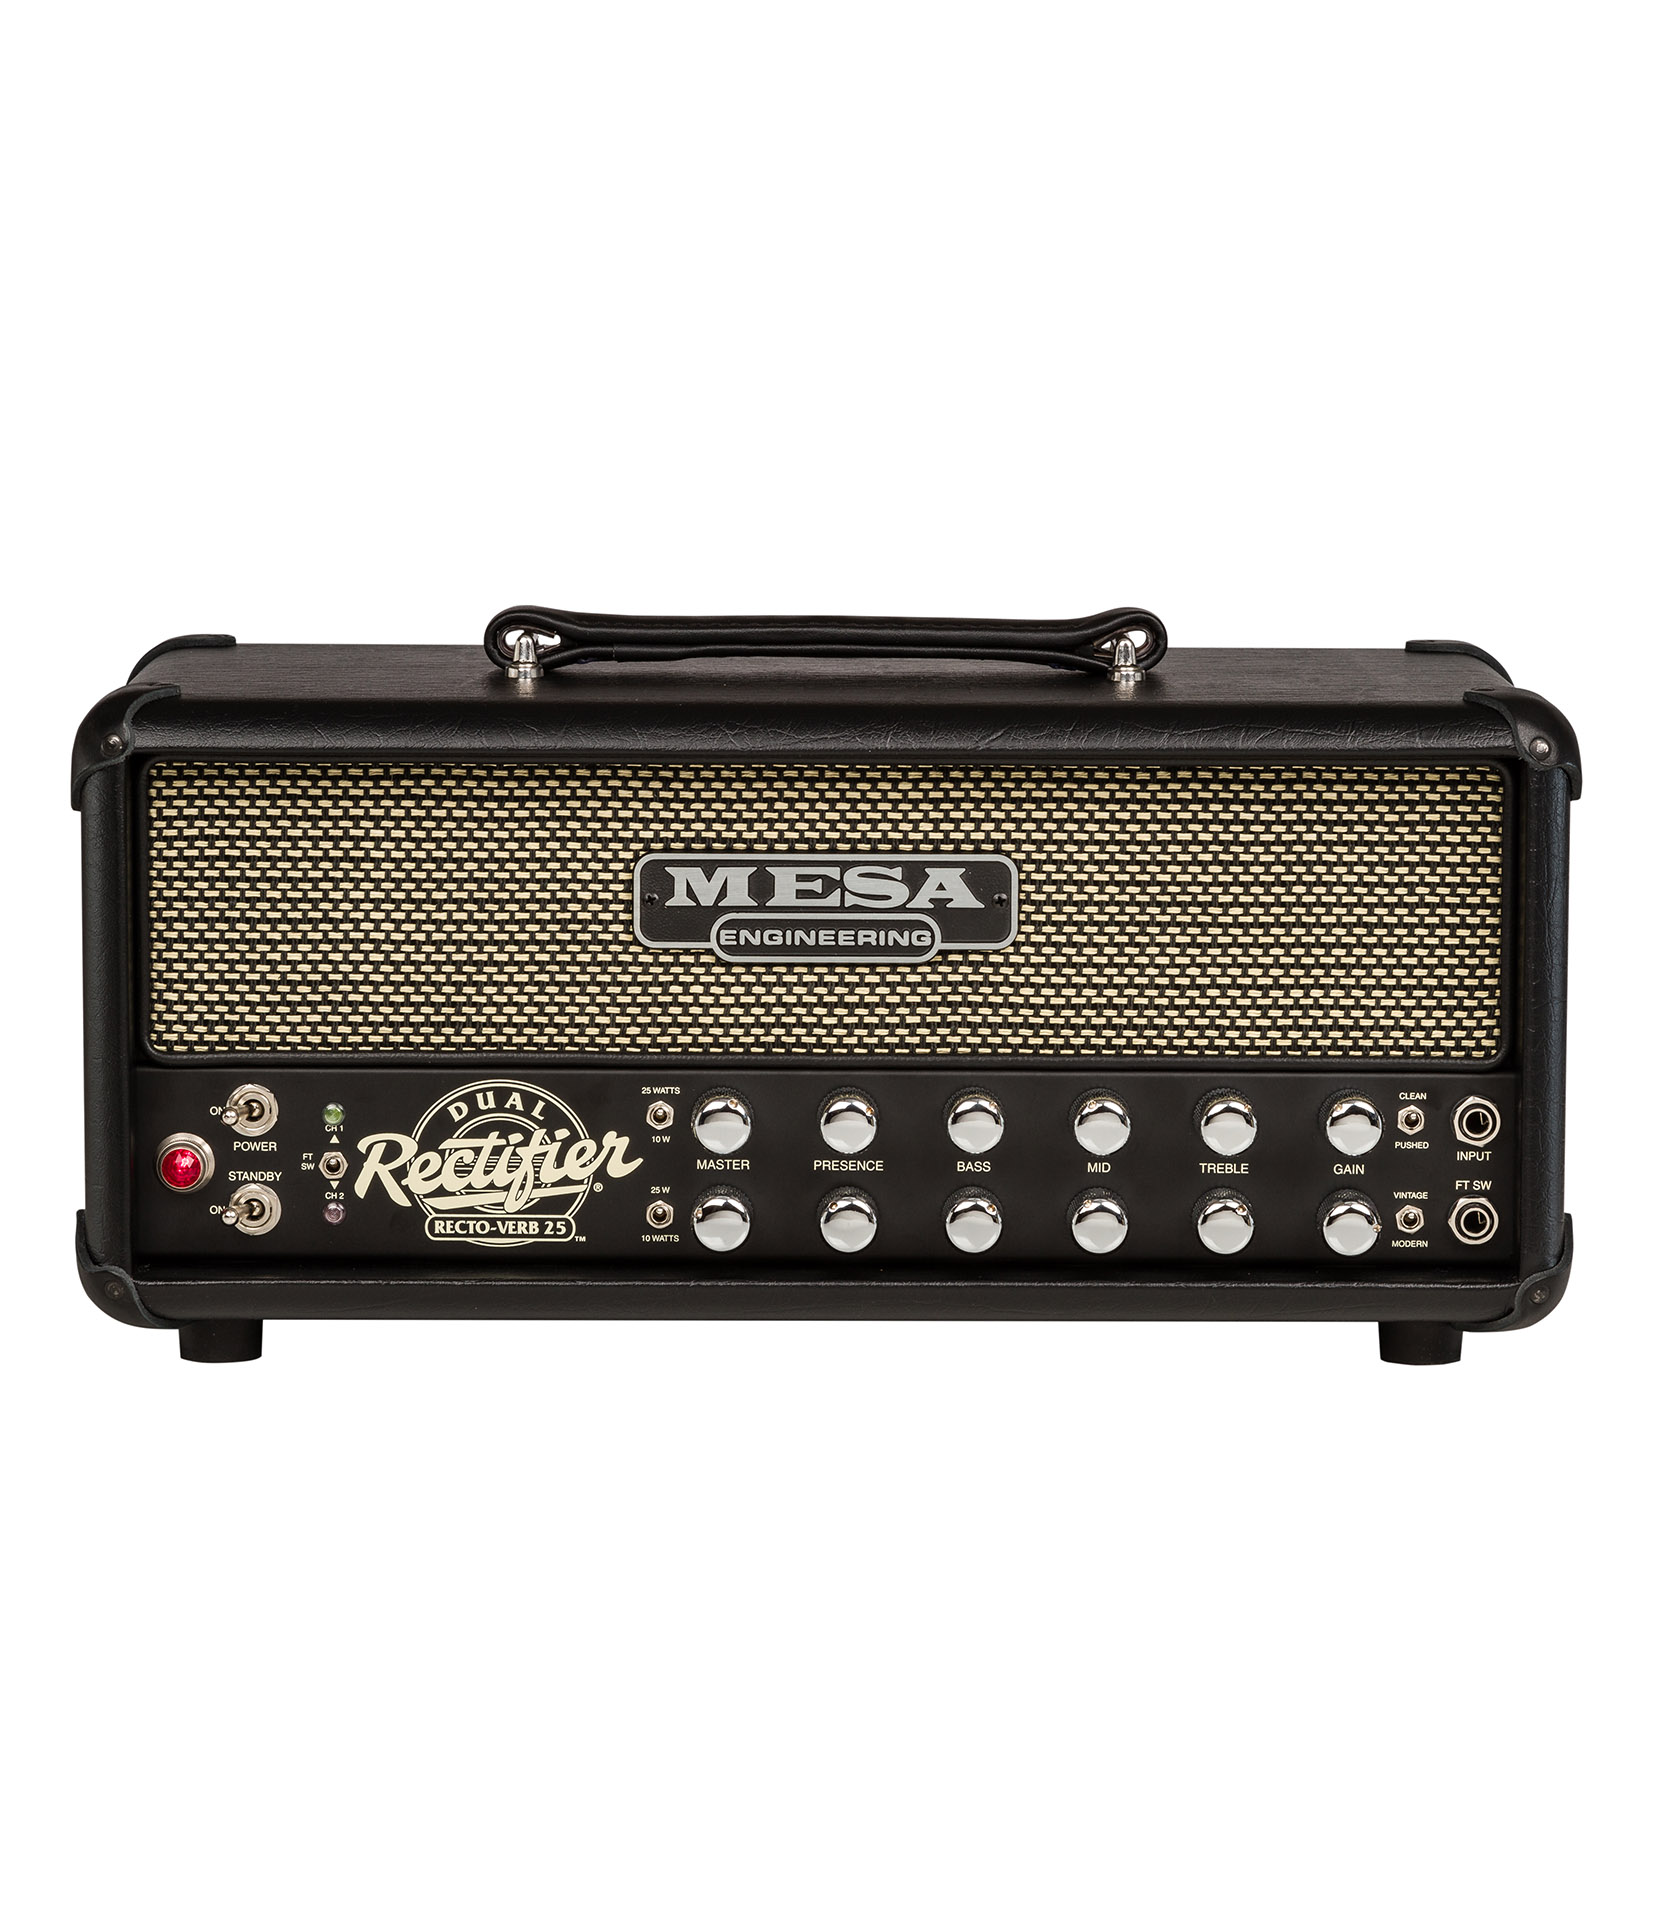 Buy mesaboogie Recto Verb 25 Head Melody House